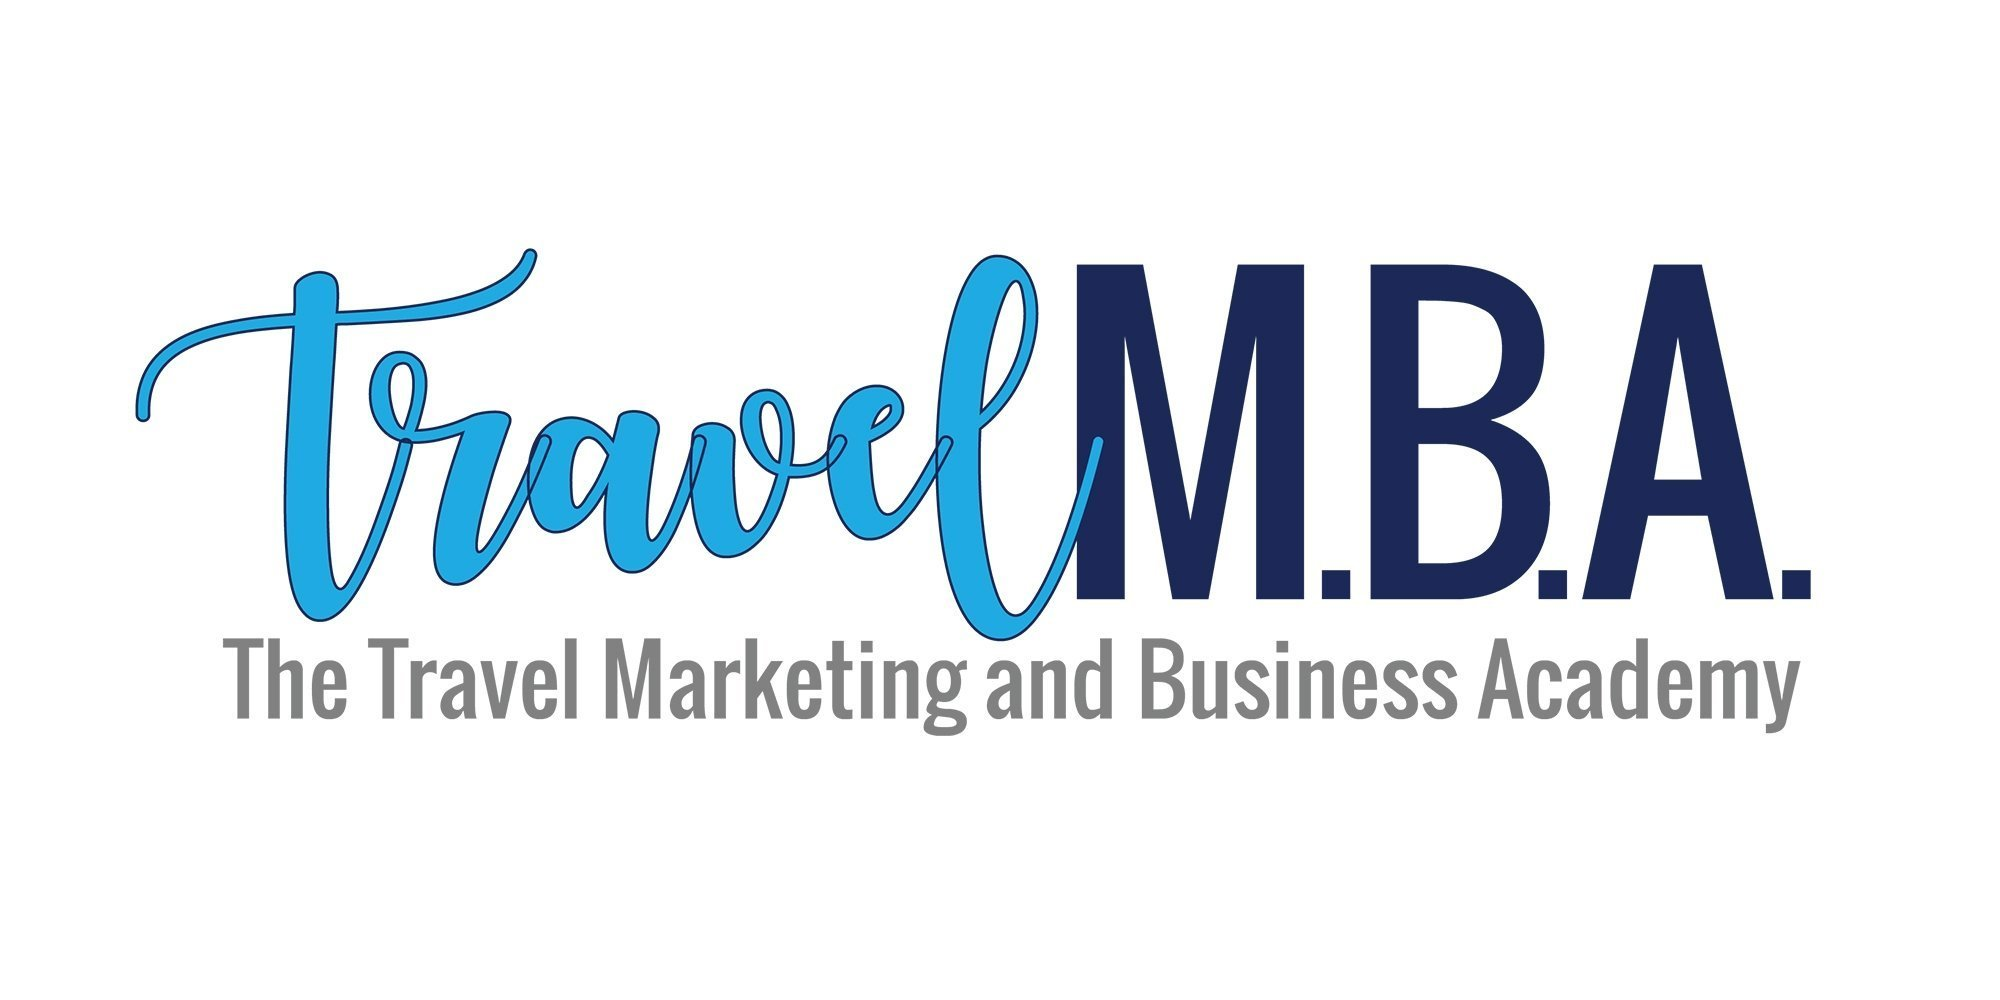 The Travel Marketing and Business Academy